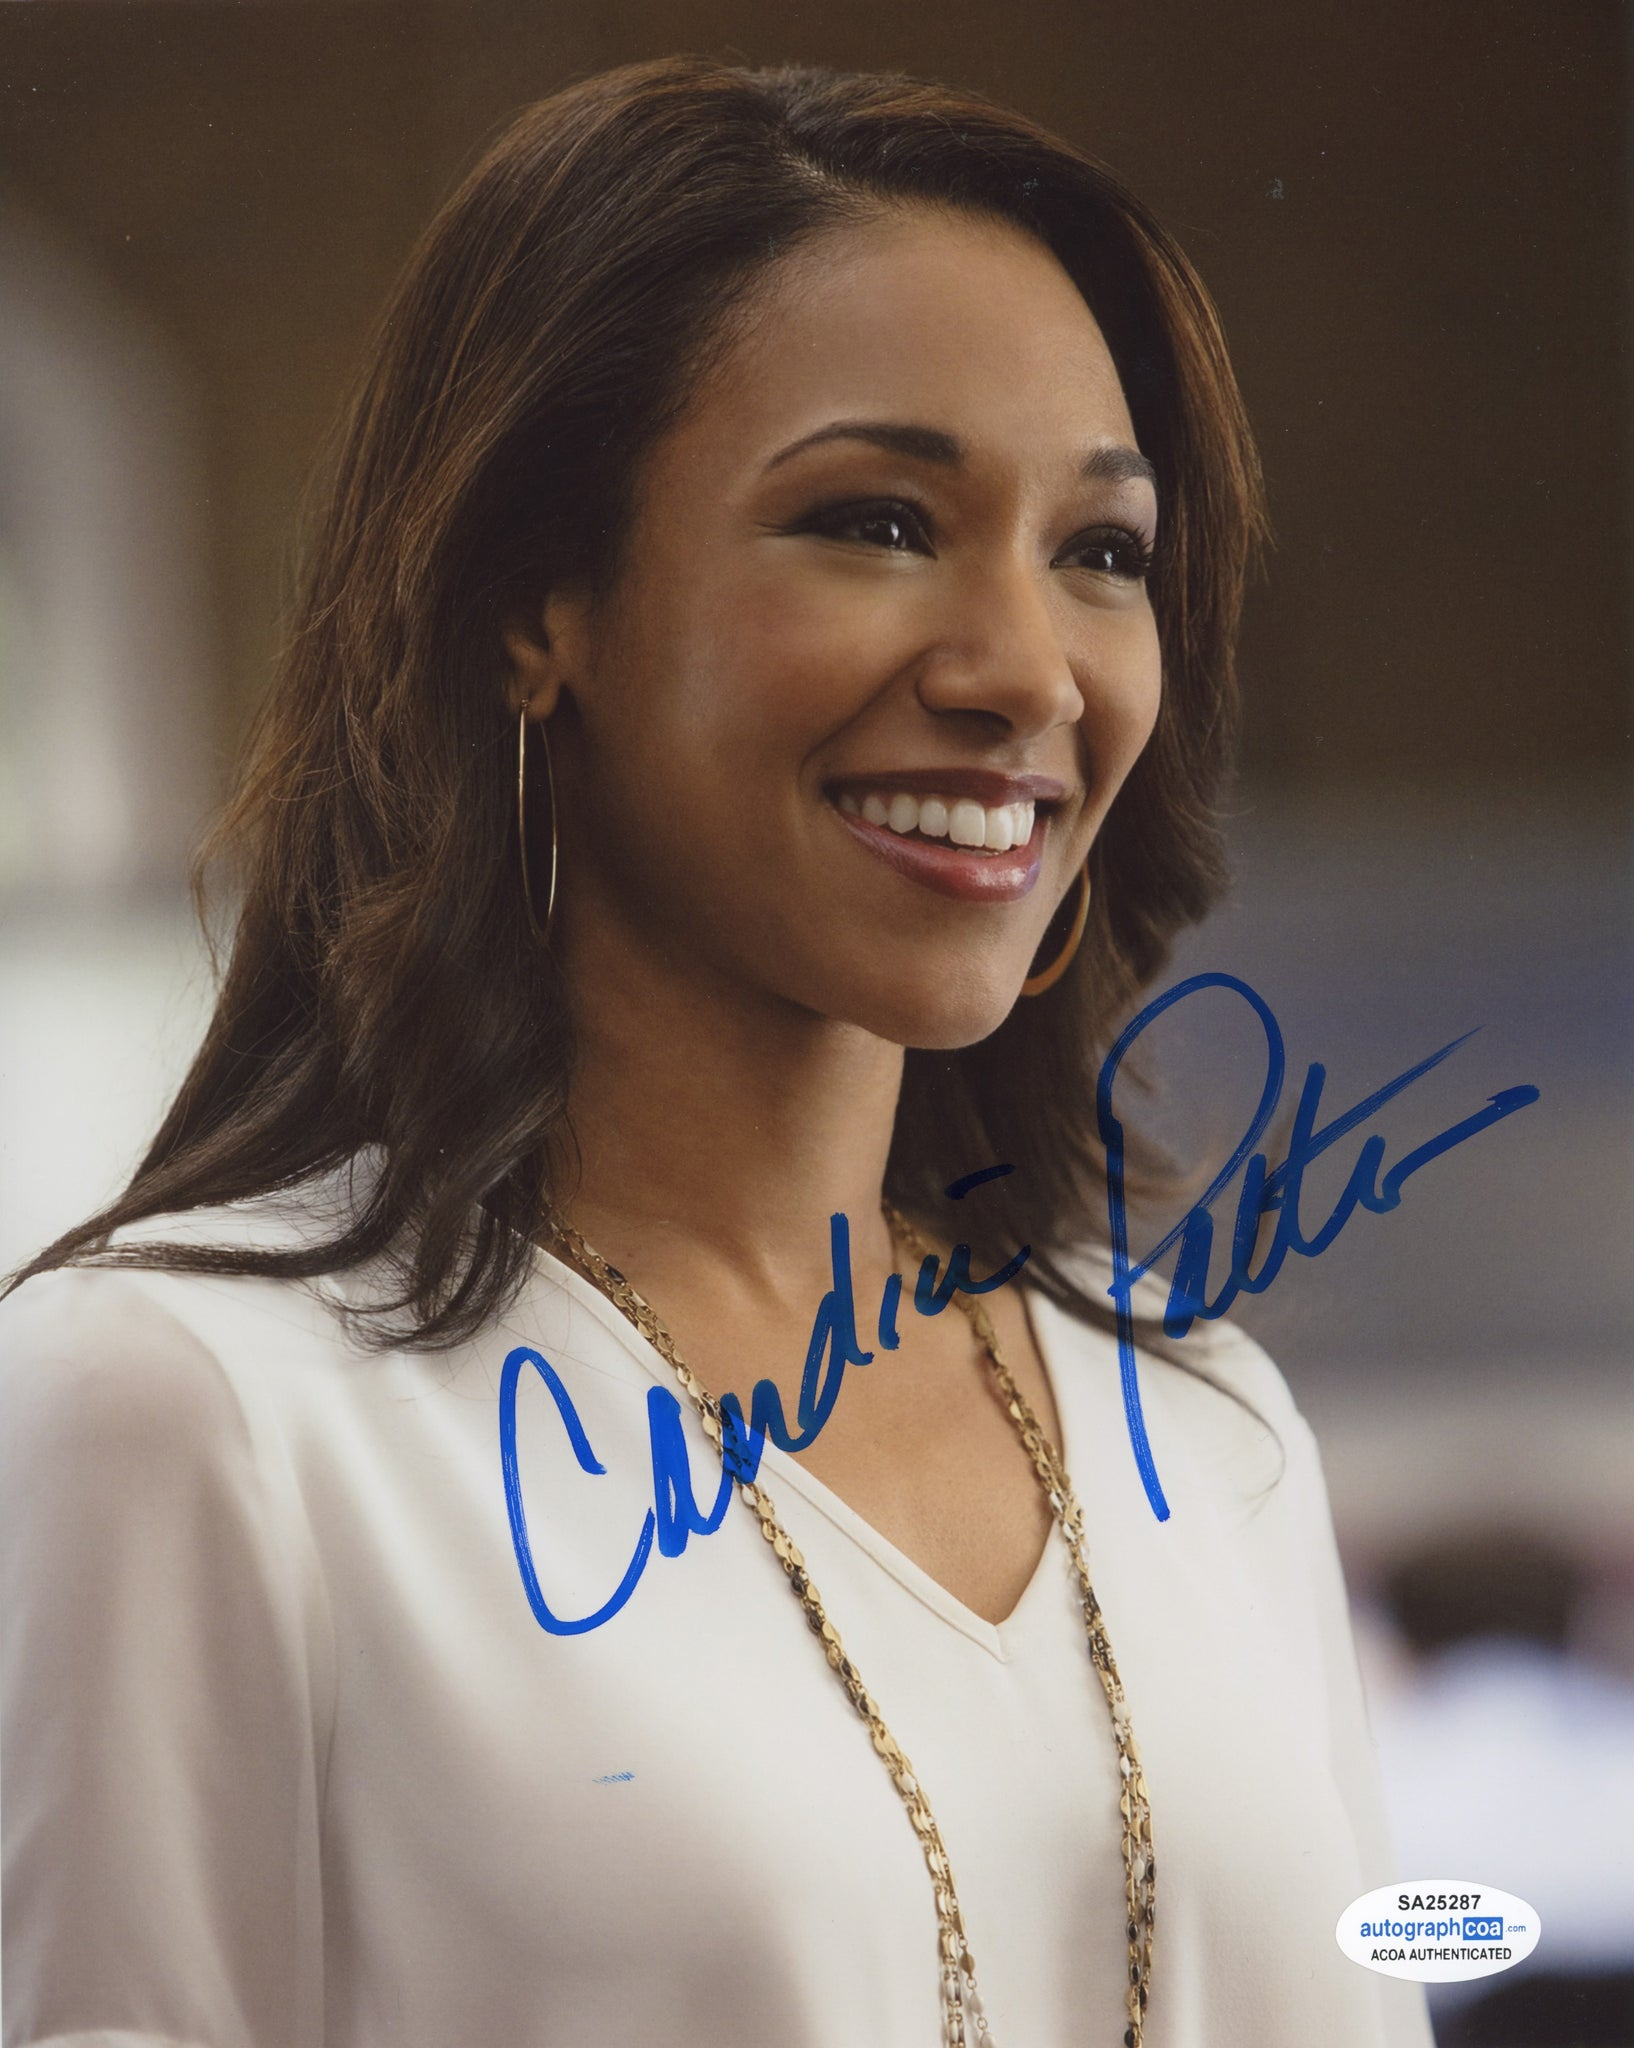 Candice Patton The Flash Sexy Signed Autograph 8x10 Photo ACOA Arrow - Outlaw Hobbies Authentic Autographs